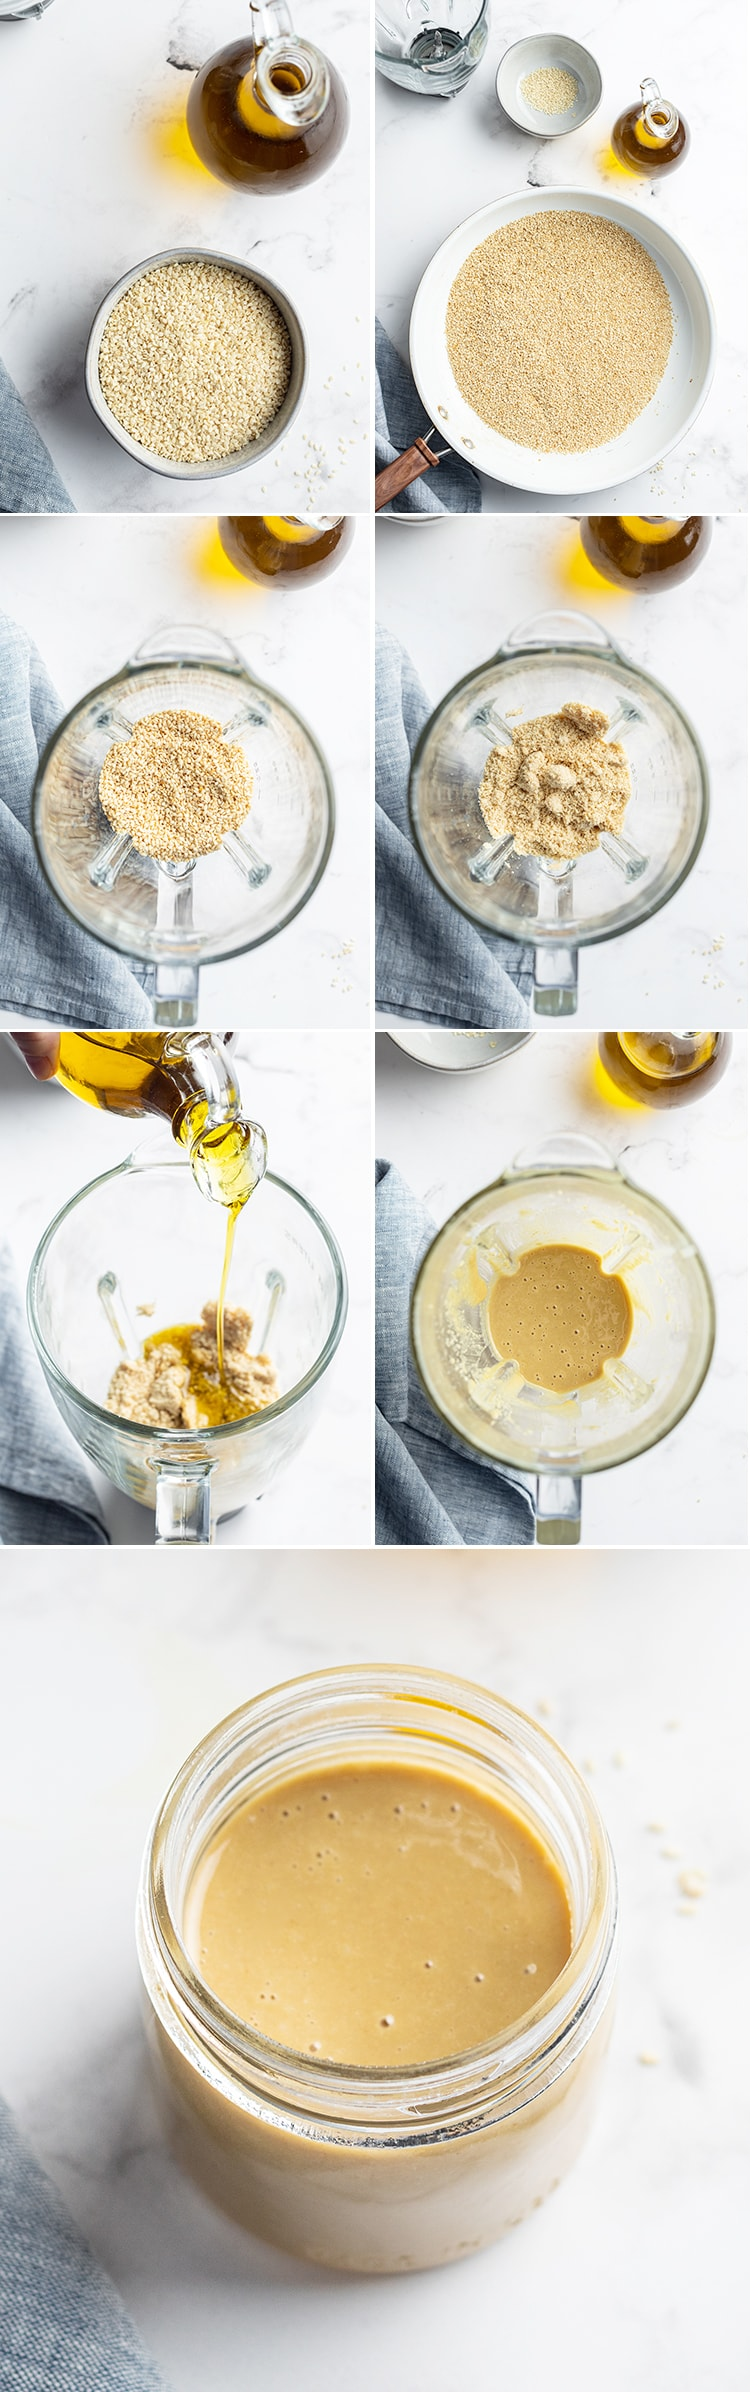 Step by step photos in a collage showing how to make homemade tahini. Showing the sesame seeds and oil, then the sesame seeds being toasted, then blended up in a jar, then adding the oil and the tahini is smooth in the blender. Then the final photo is the tahini in a jar.